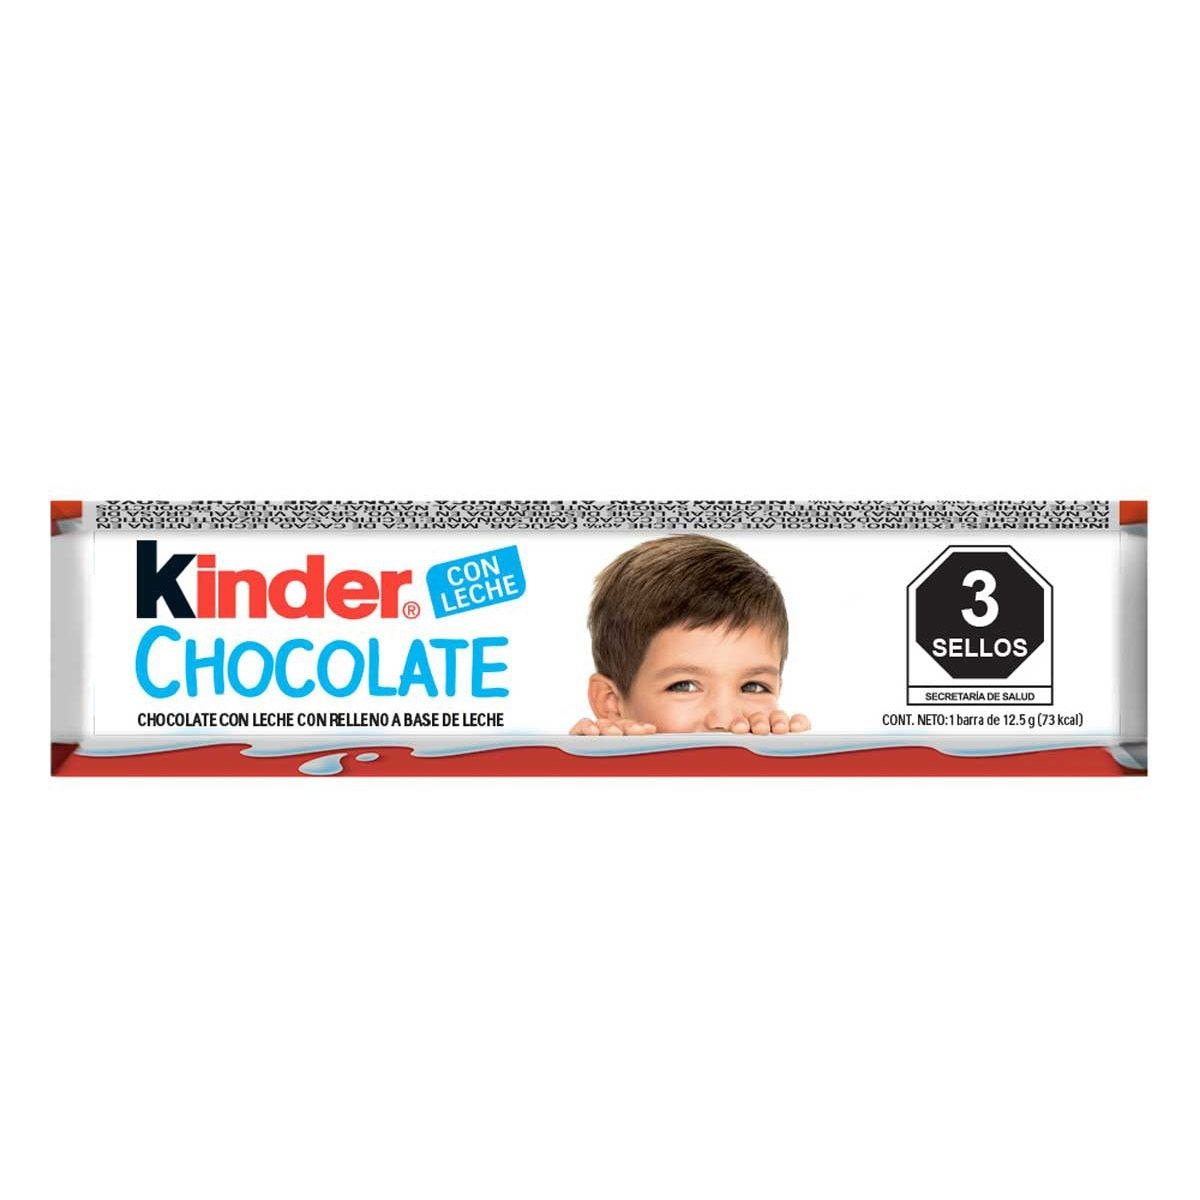 Kinder chocolate t1x24x8  - Sanborns